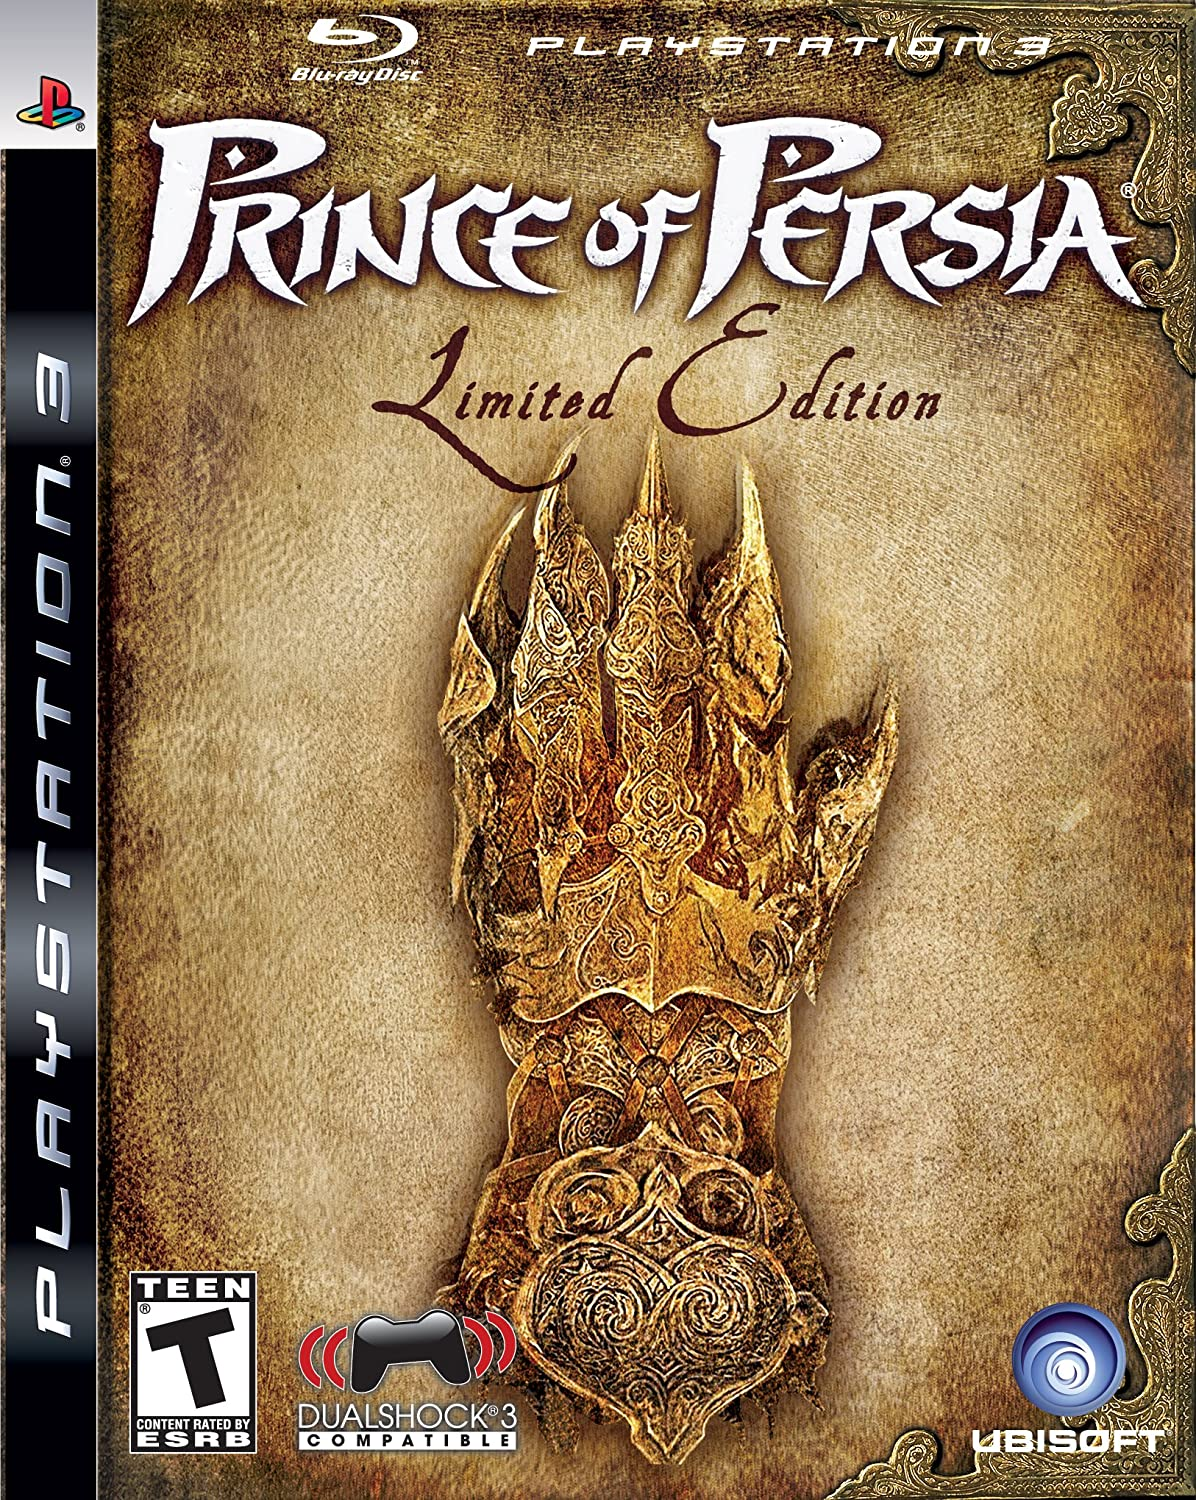 Amazon Com Prince Of Persia Limited Edition Playstation 3 Artist Not Provided Video Games